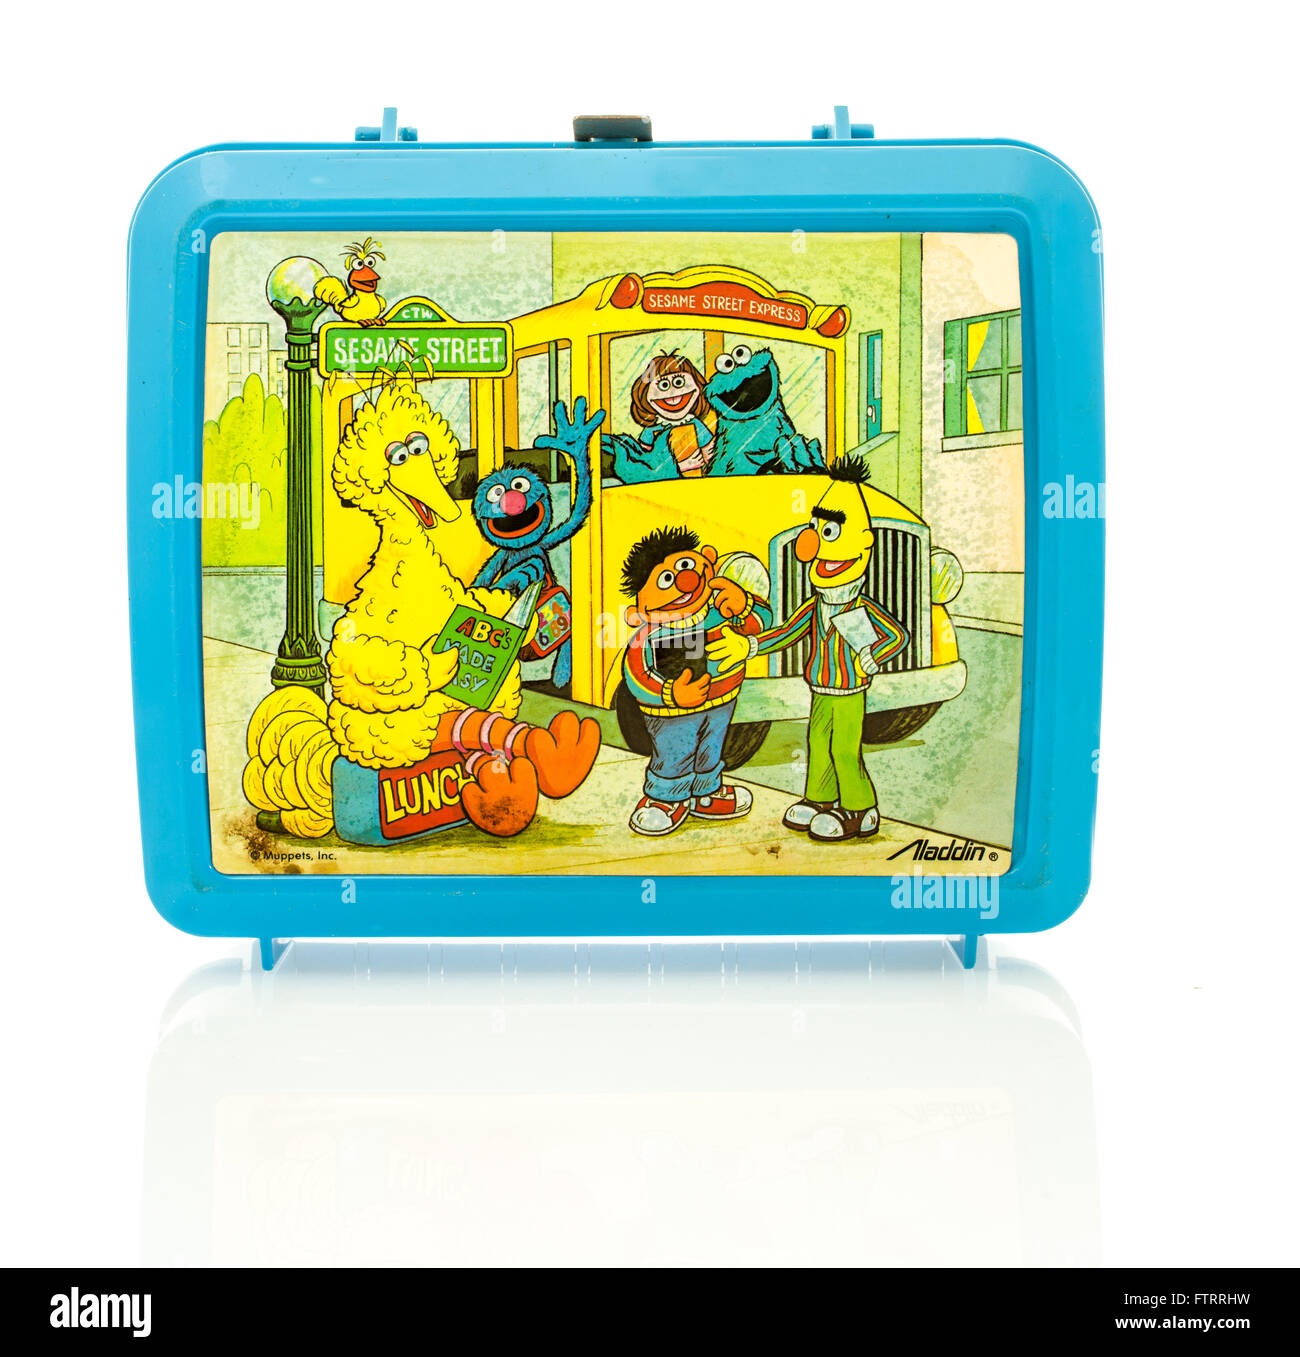 Winneconne, WI - 29 March 2016:  Plastic lunch box from the 1980's featuring Sesame Street characters.  A popular Stock Photo